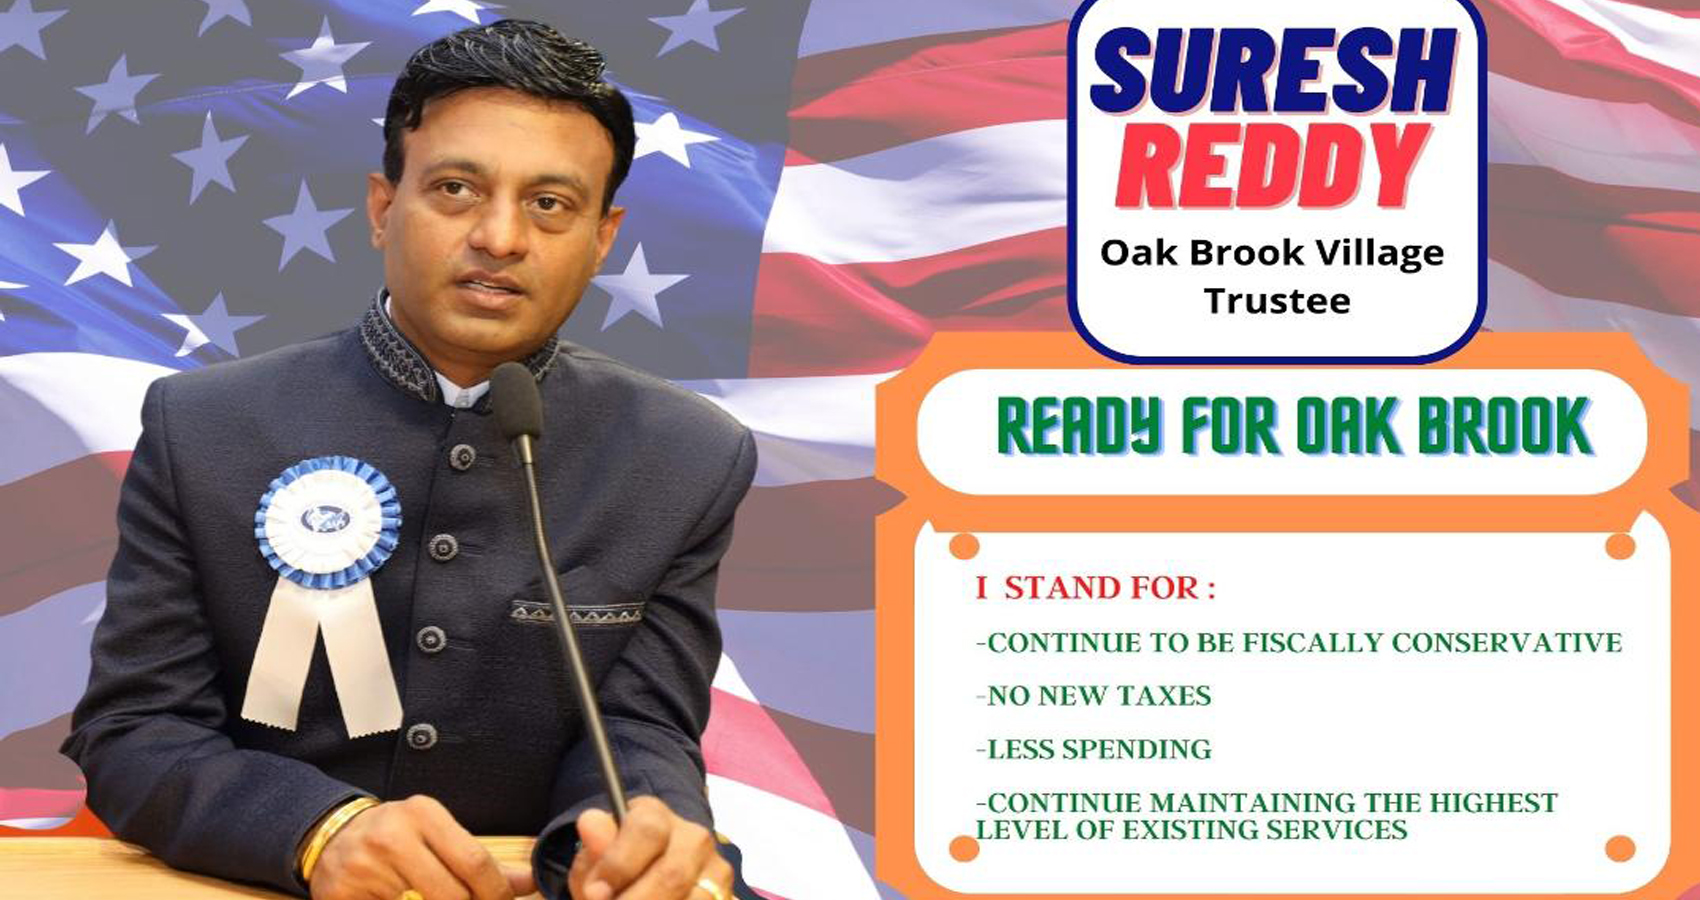 Dr. Suresh Reddy Runs For Office As Trustee of Oak Brook, IL